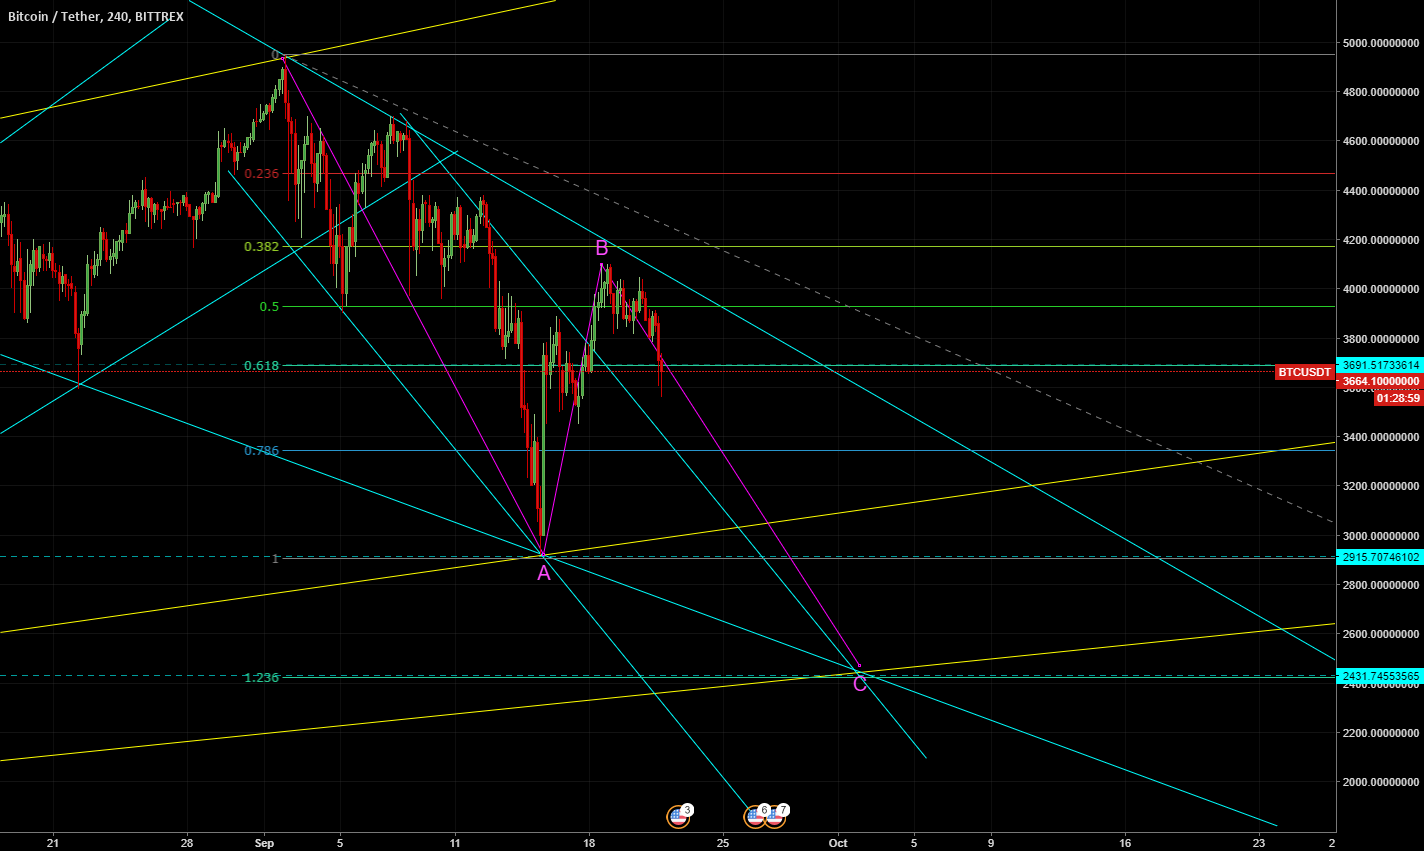 BTCUSD Down to 2400 (lot of support there)